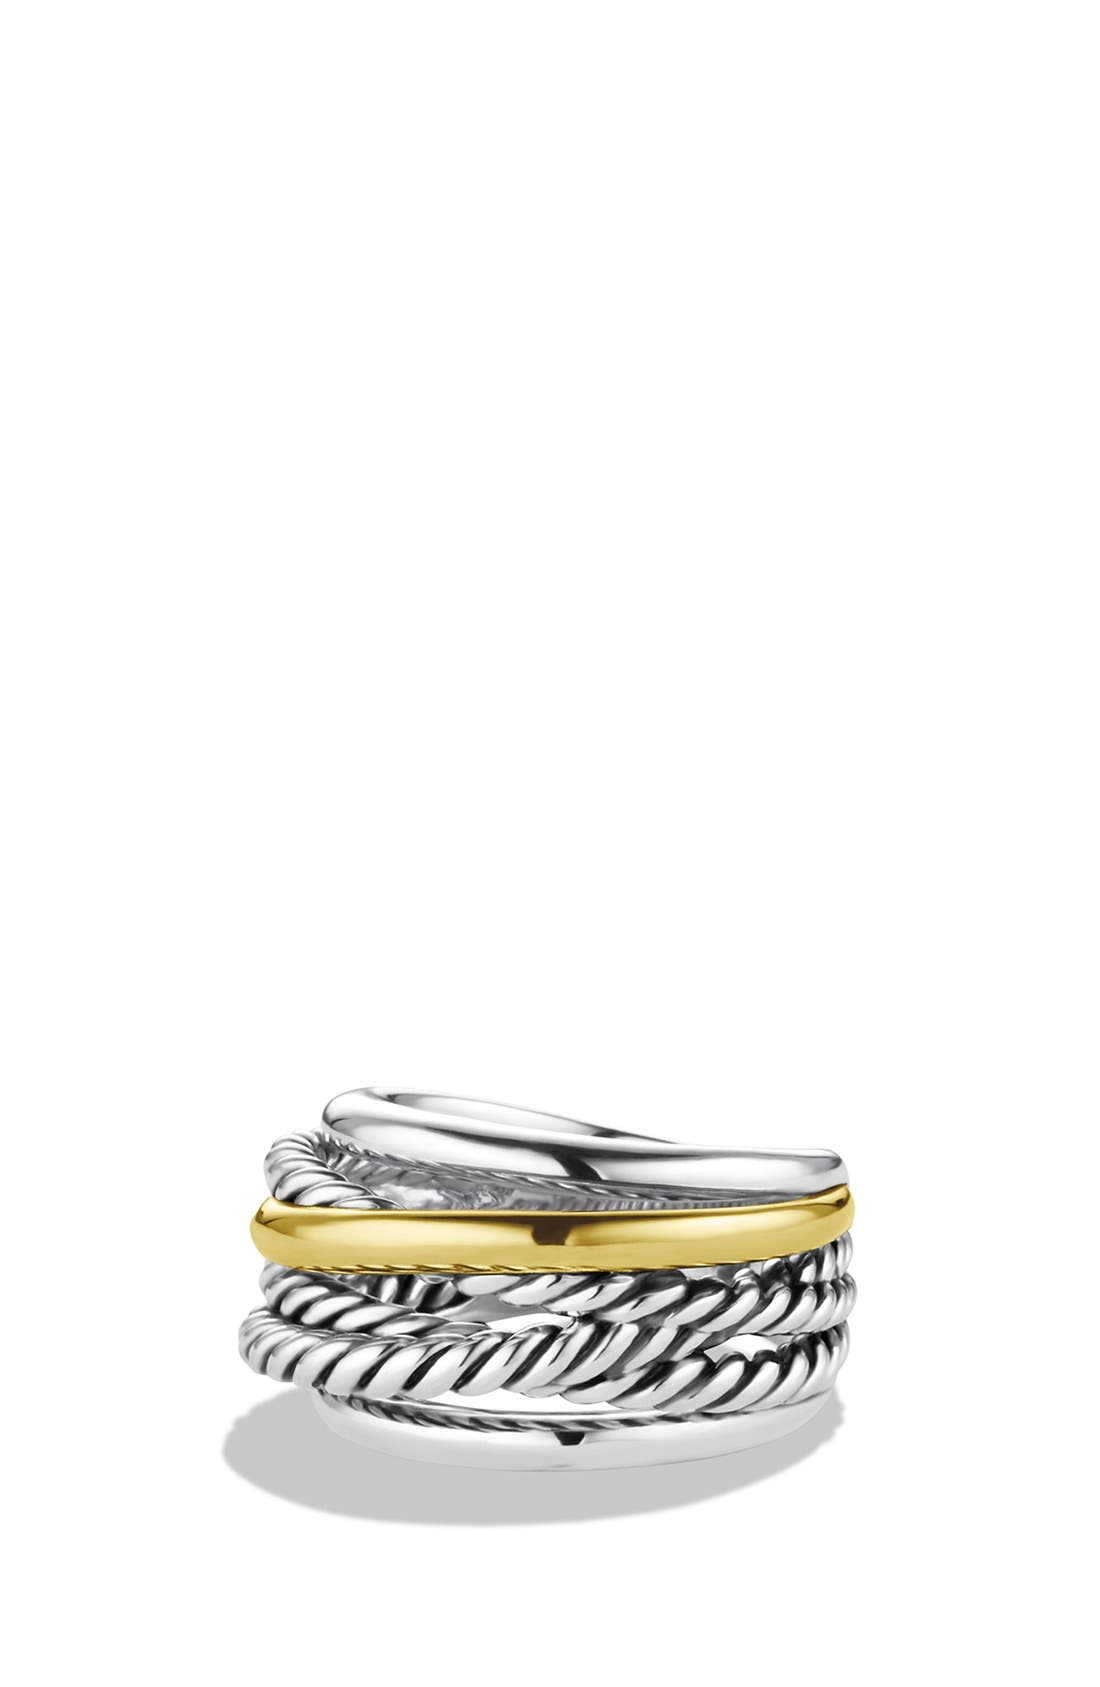 'Crossover' Narrow Ring with Gold,                         Main,                         color, Sterling Silver/ 14K Gold